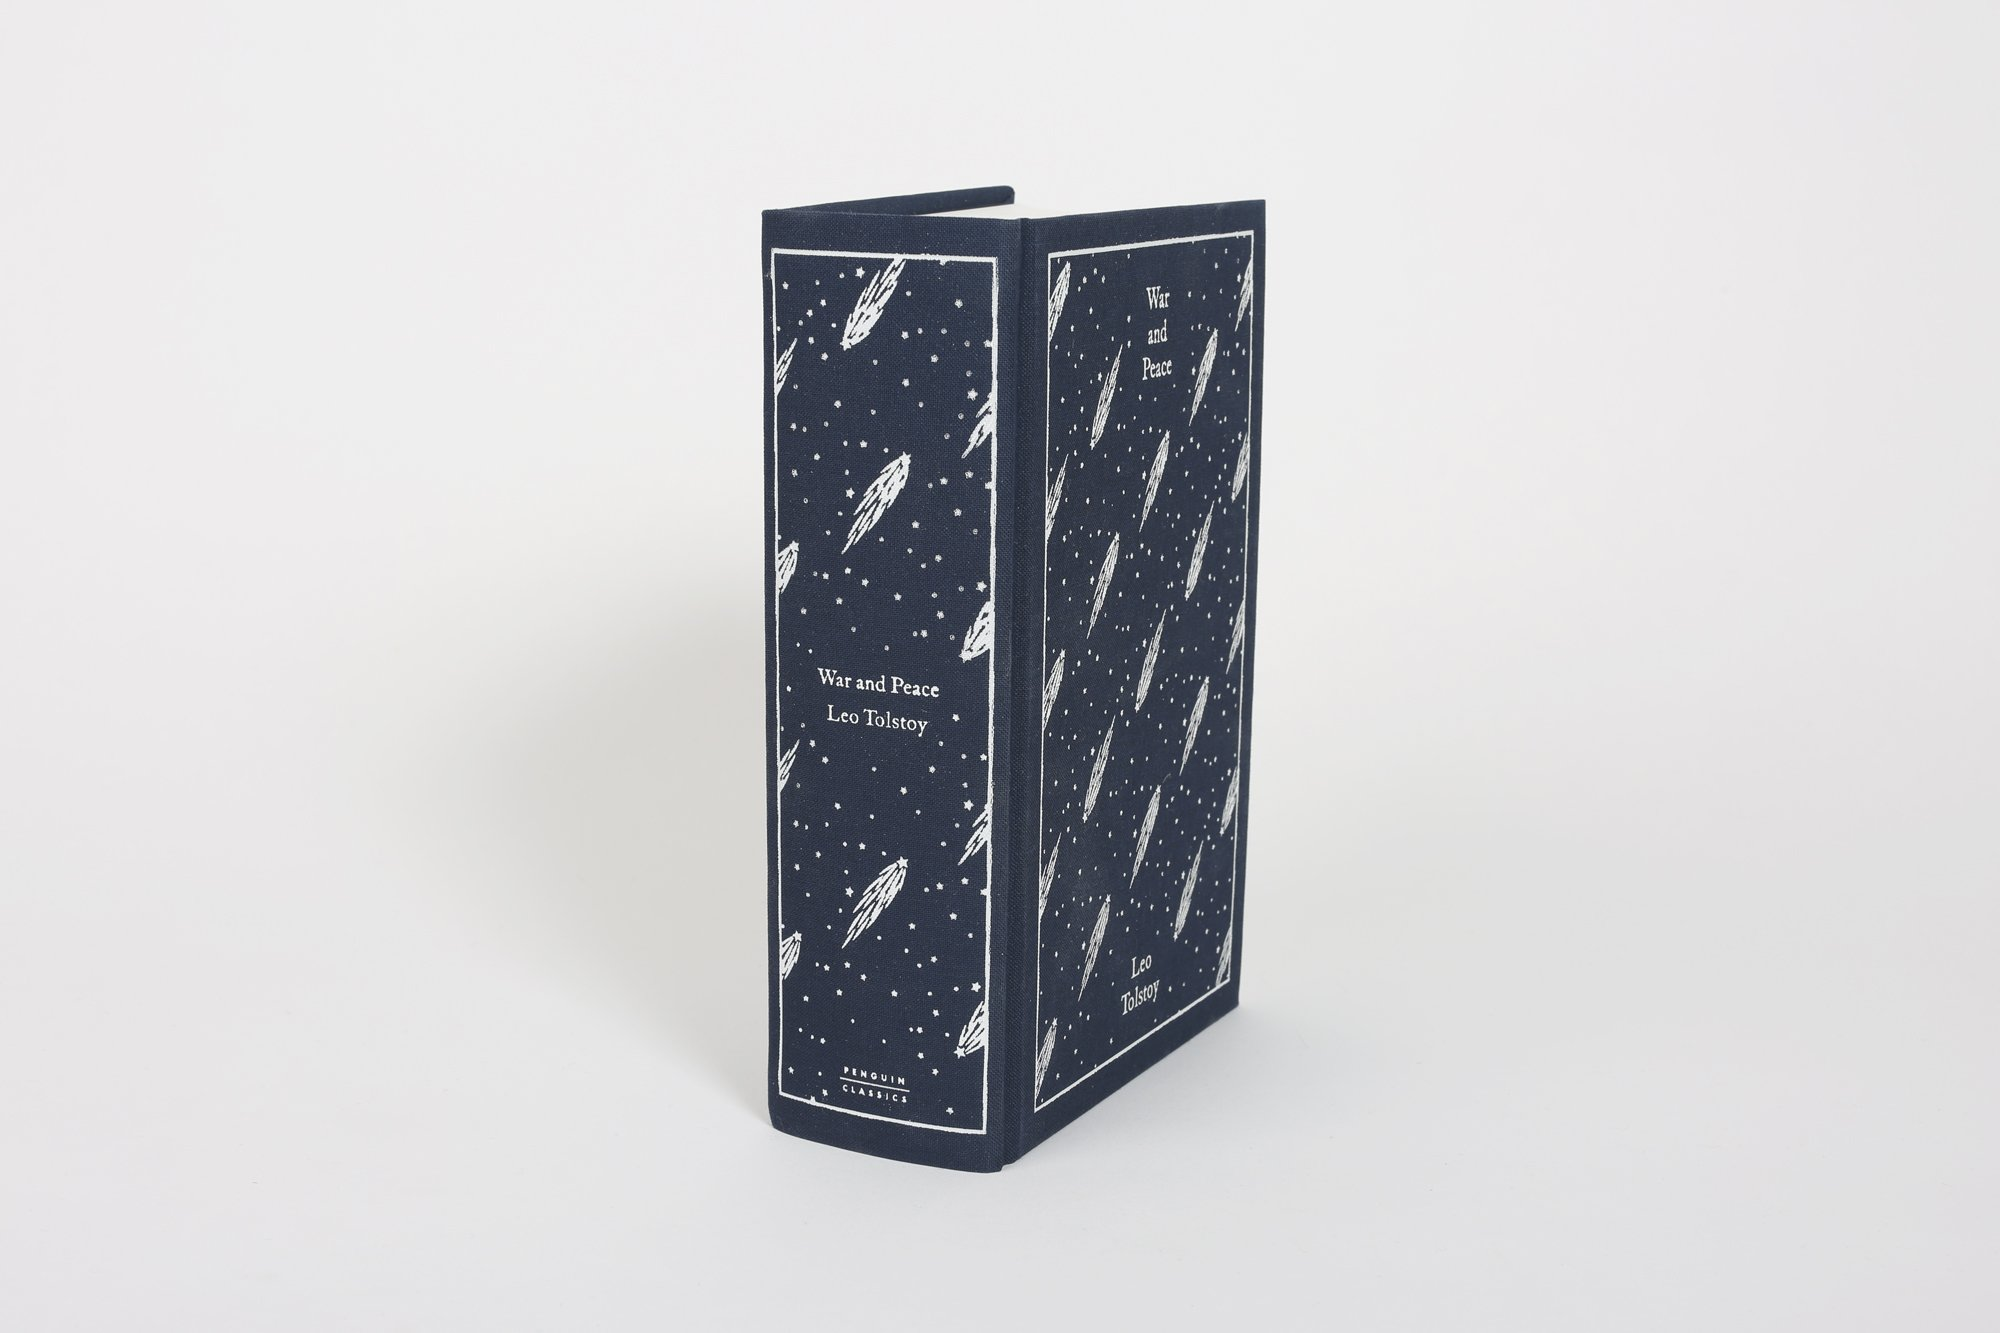 war and peace penguin clothbound classics amazon co uk leo war and peace penguin clothbound classics amazon co uk leo tolstoy 9780241265543 books